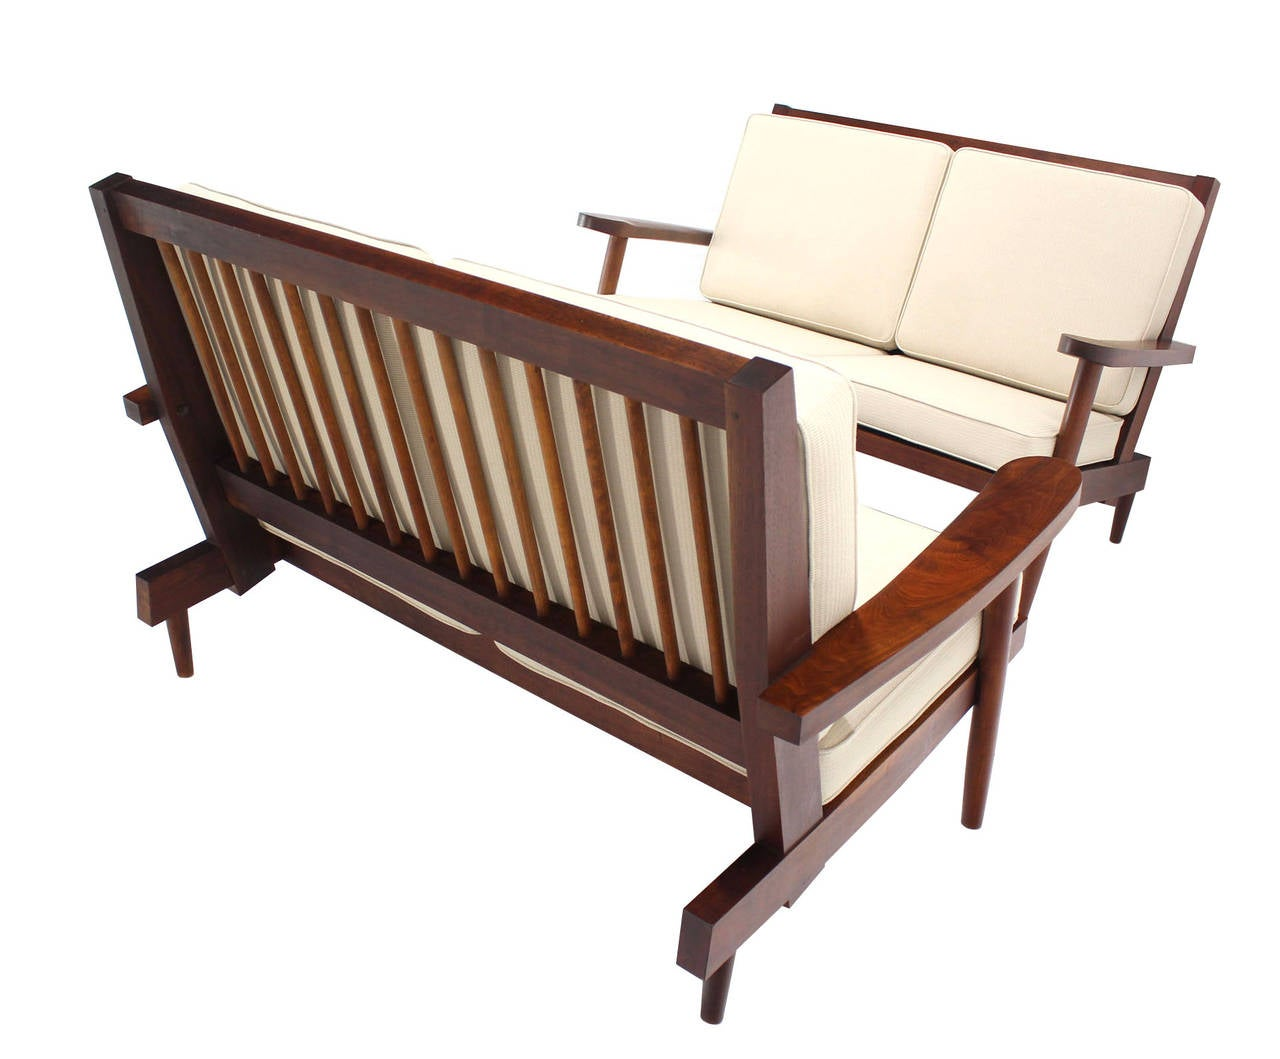 Pair of George Nakashima style loveseats or sofas with new upholstery.